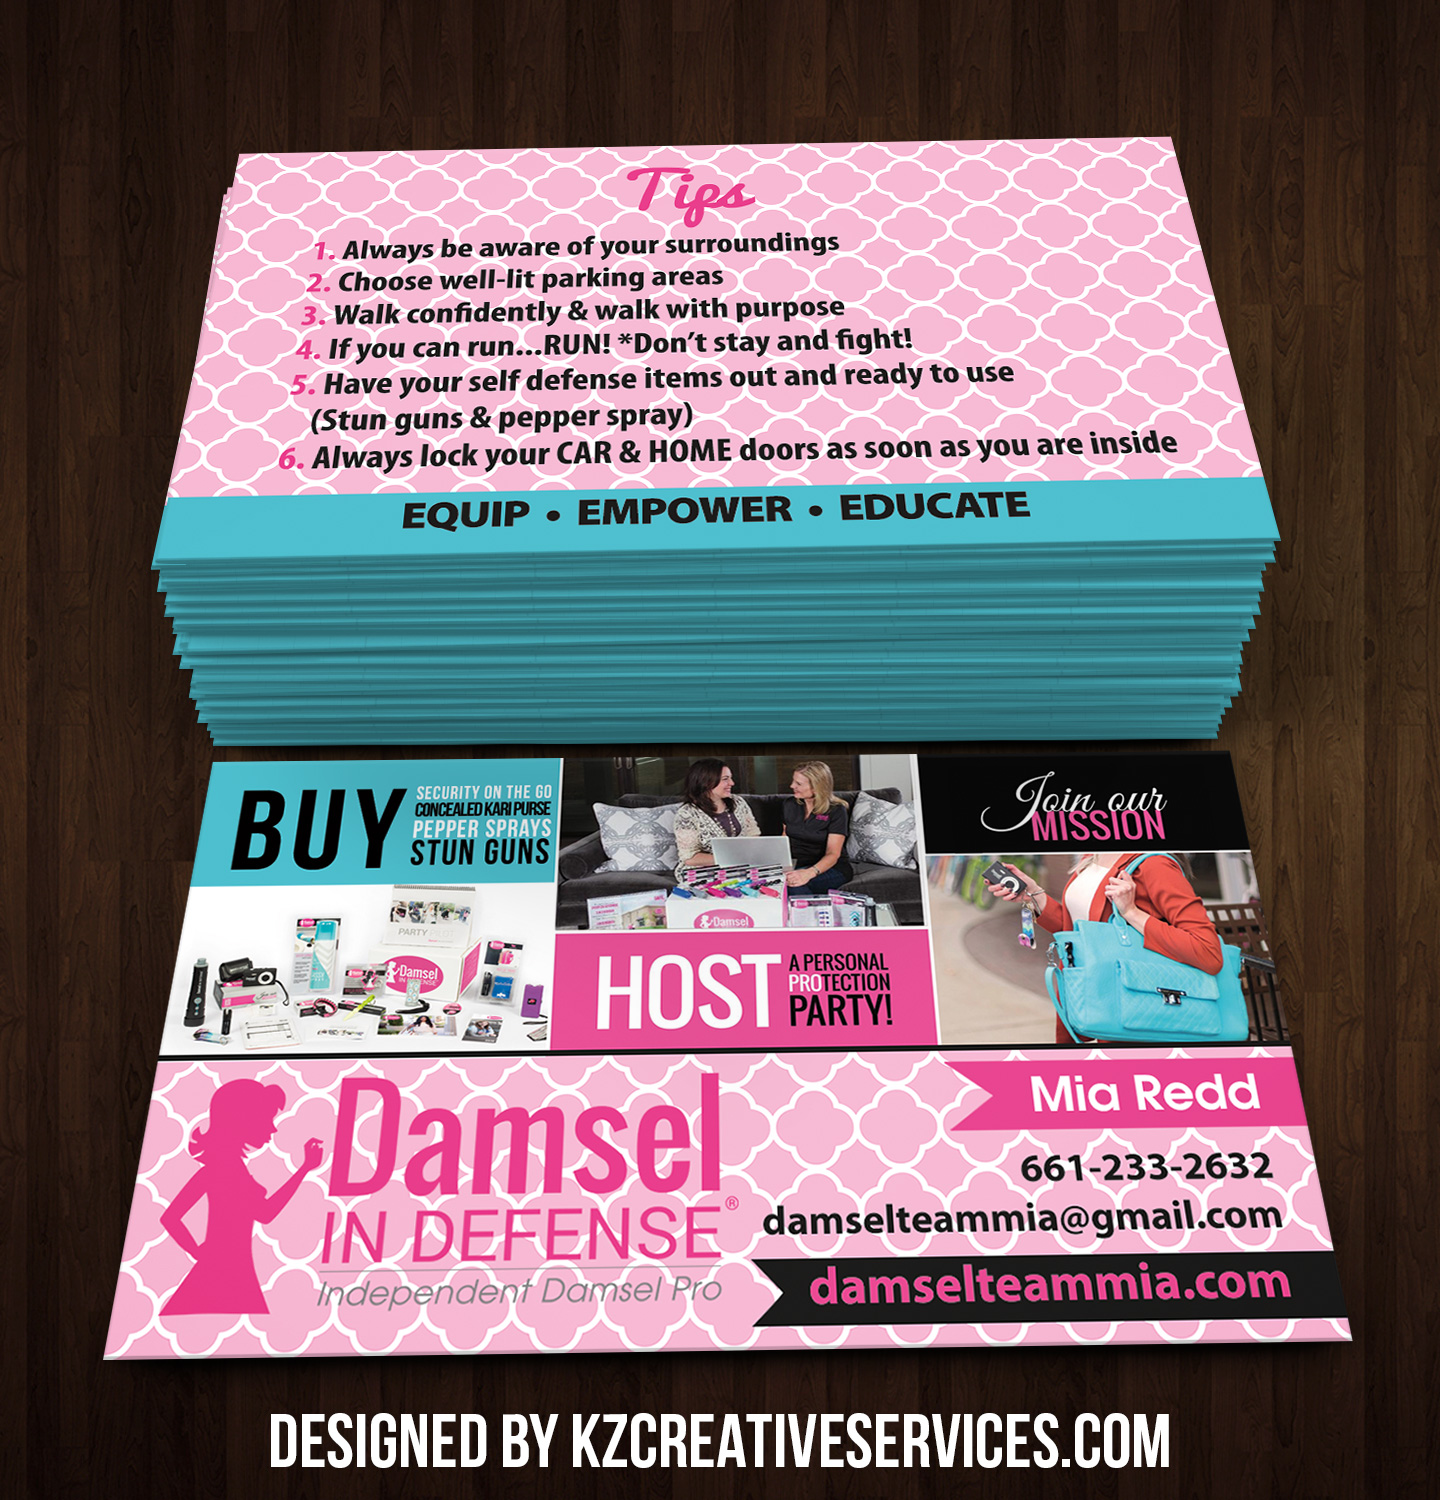 Damsel in Defense Business Cards style 1 · KZ Creative Services